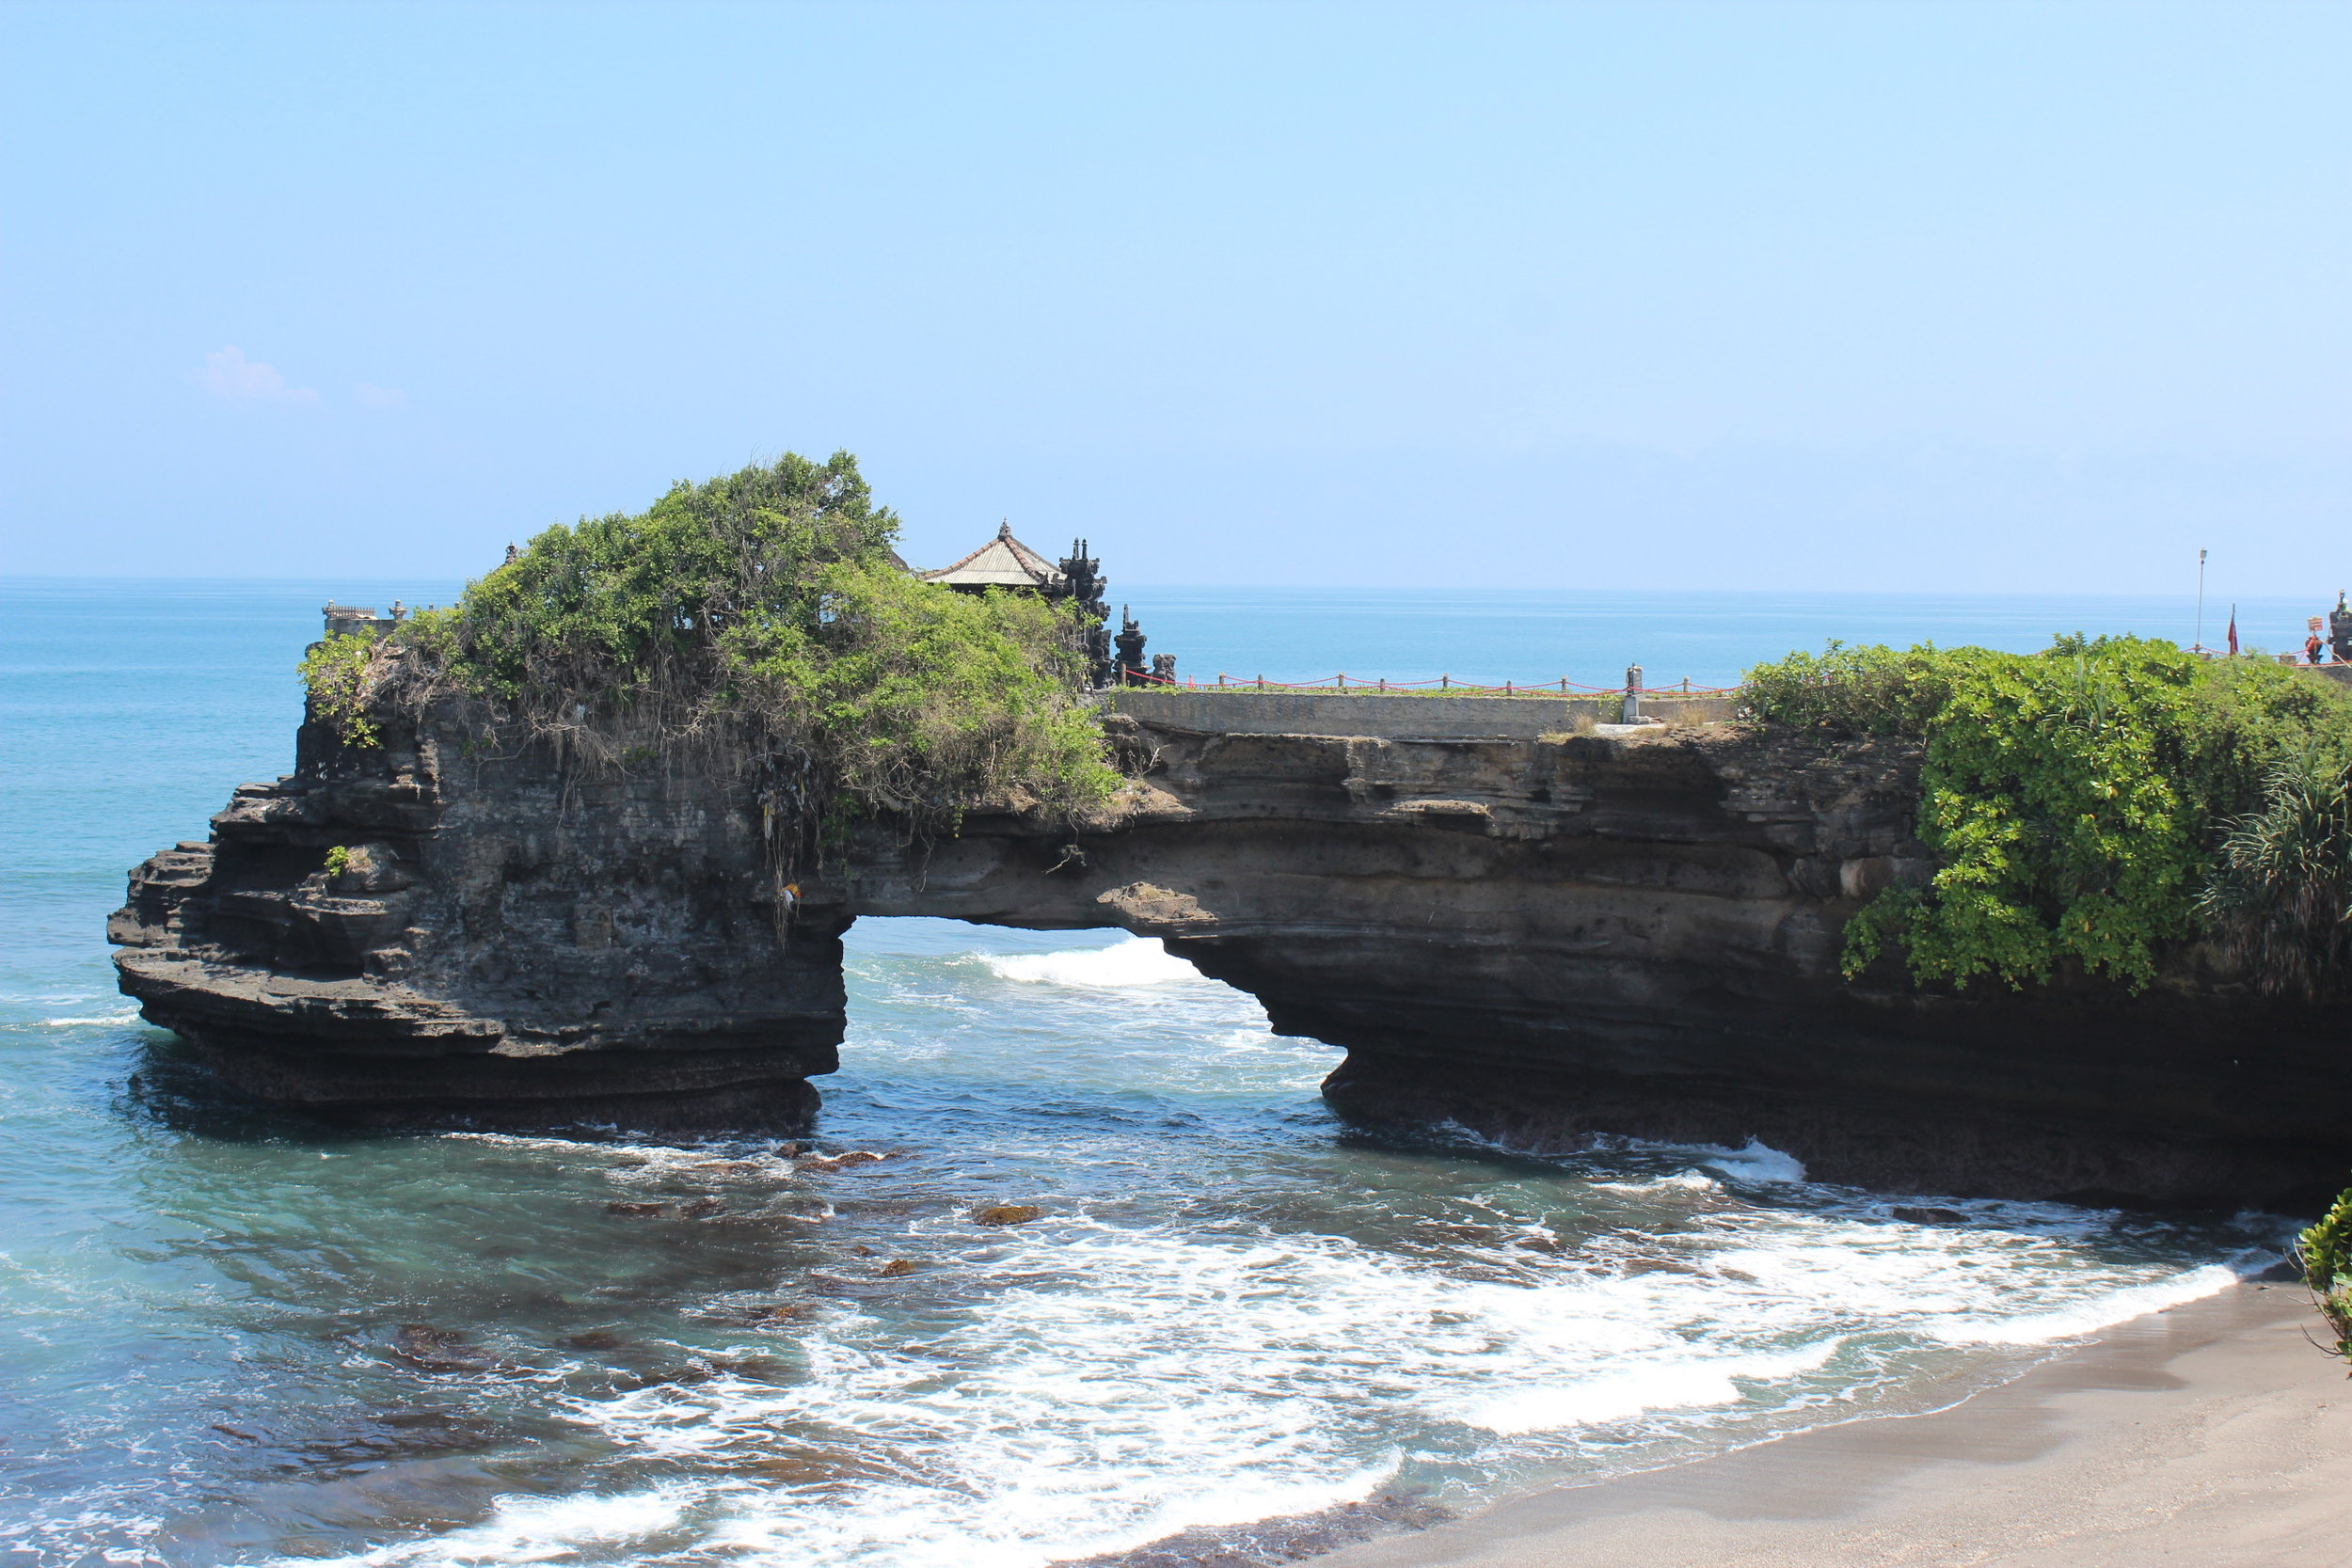 Bali Tanah Lot We the lost girls